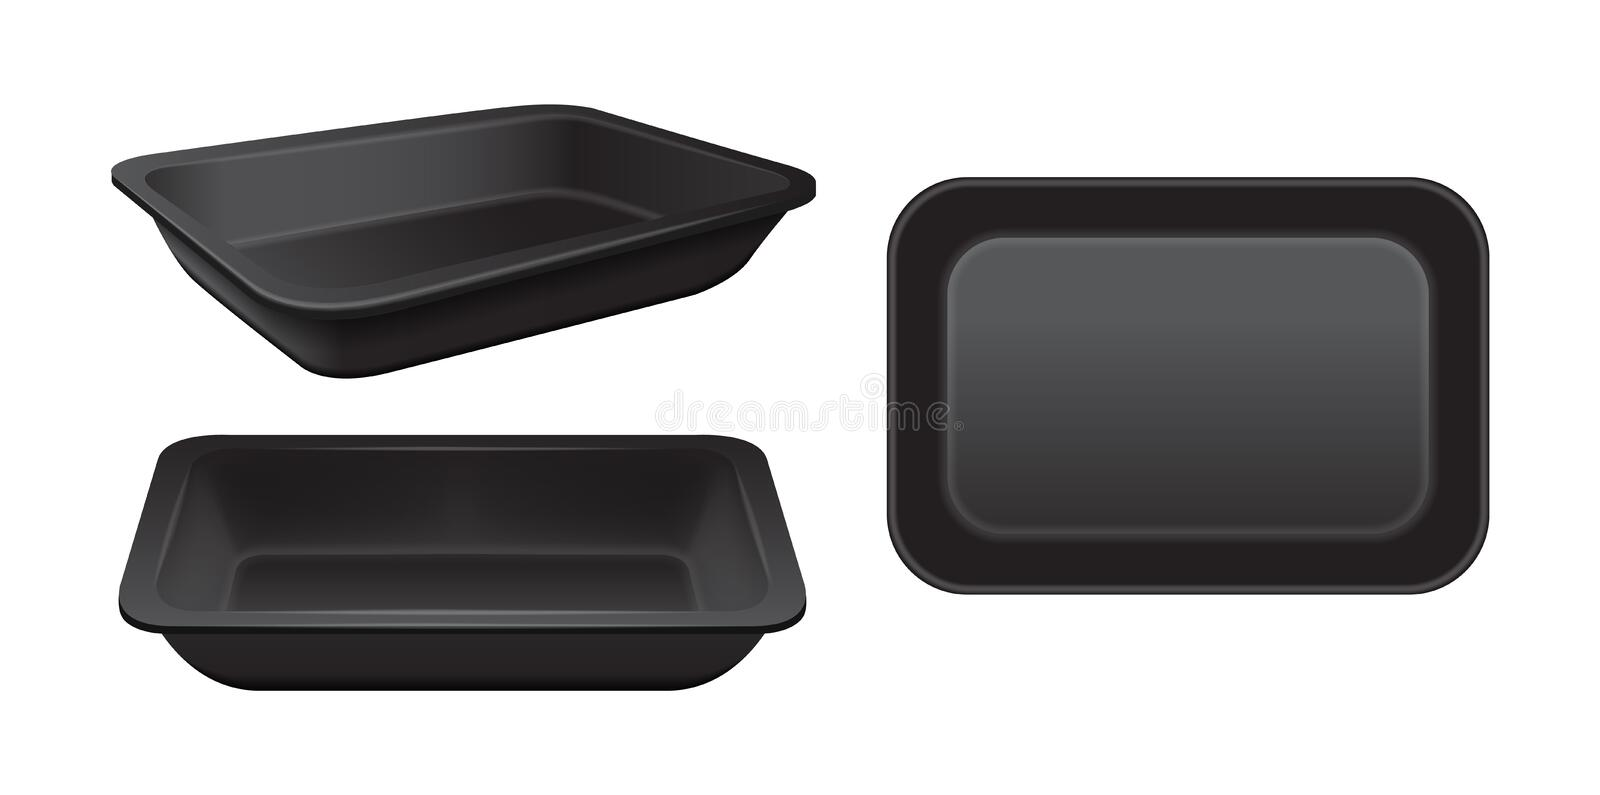 Empty styrofoam food storage. Black food plastic tray, set of foam meal containers. For your design vector illustration